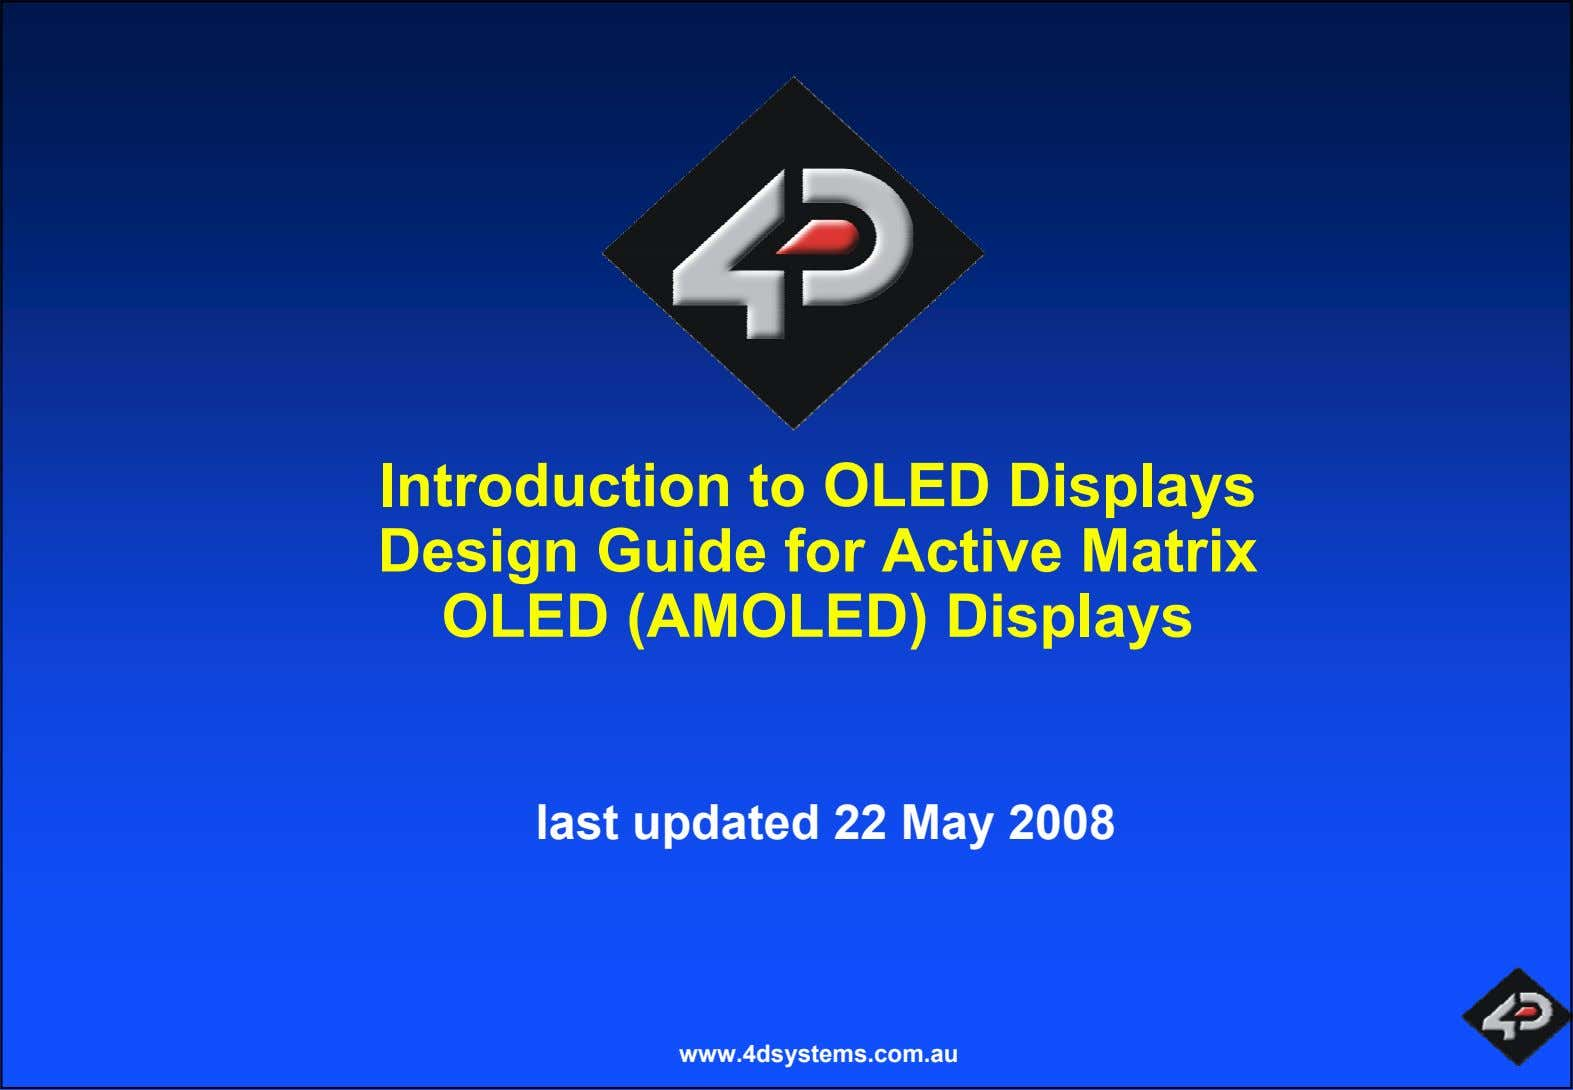 Introduction to OLED Displays Design Guide for Active Matrix OLED (AMOLED) Displays last updated 22